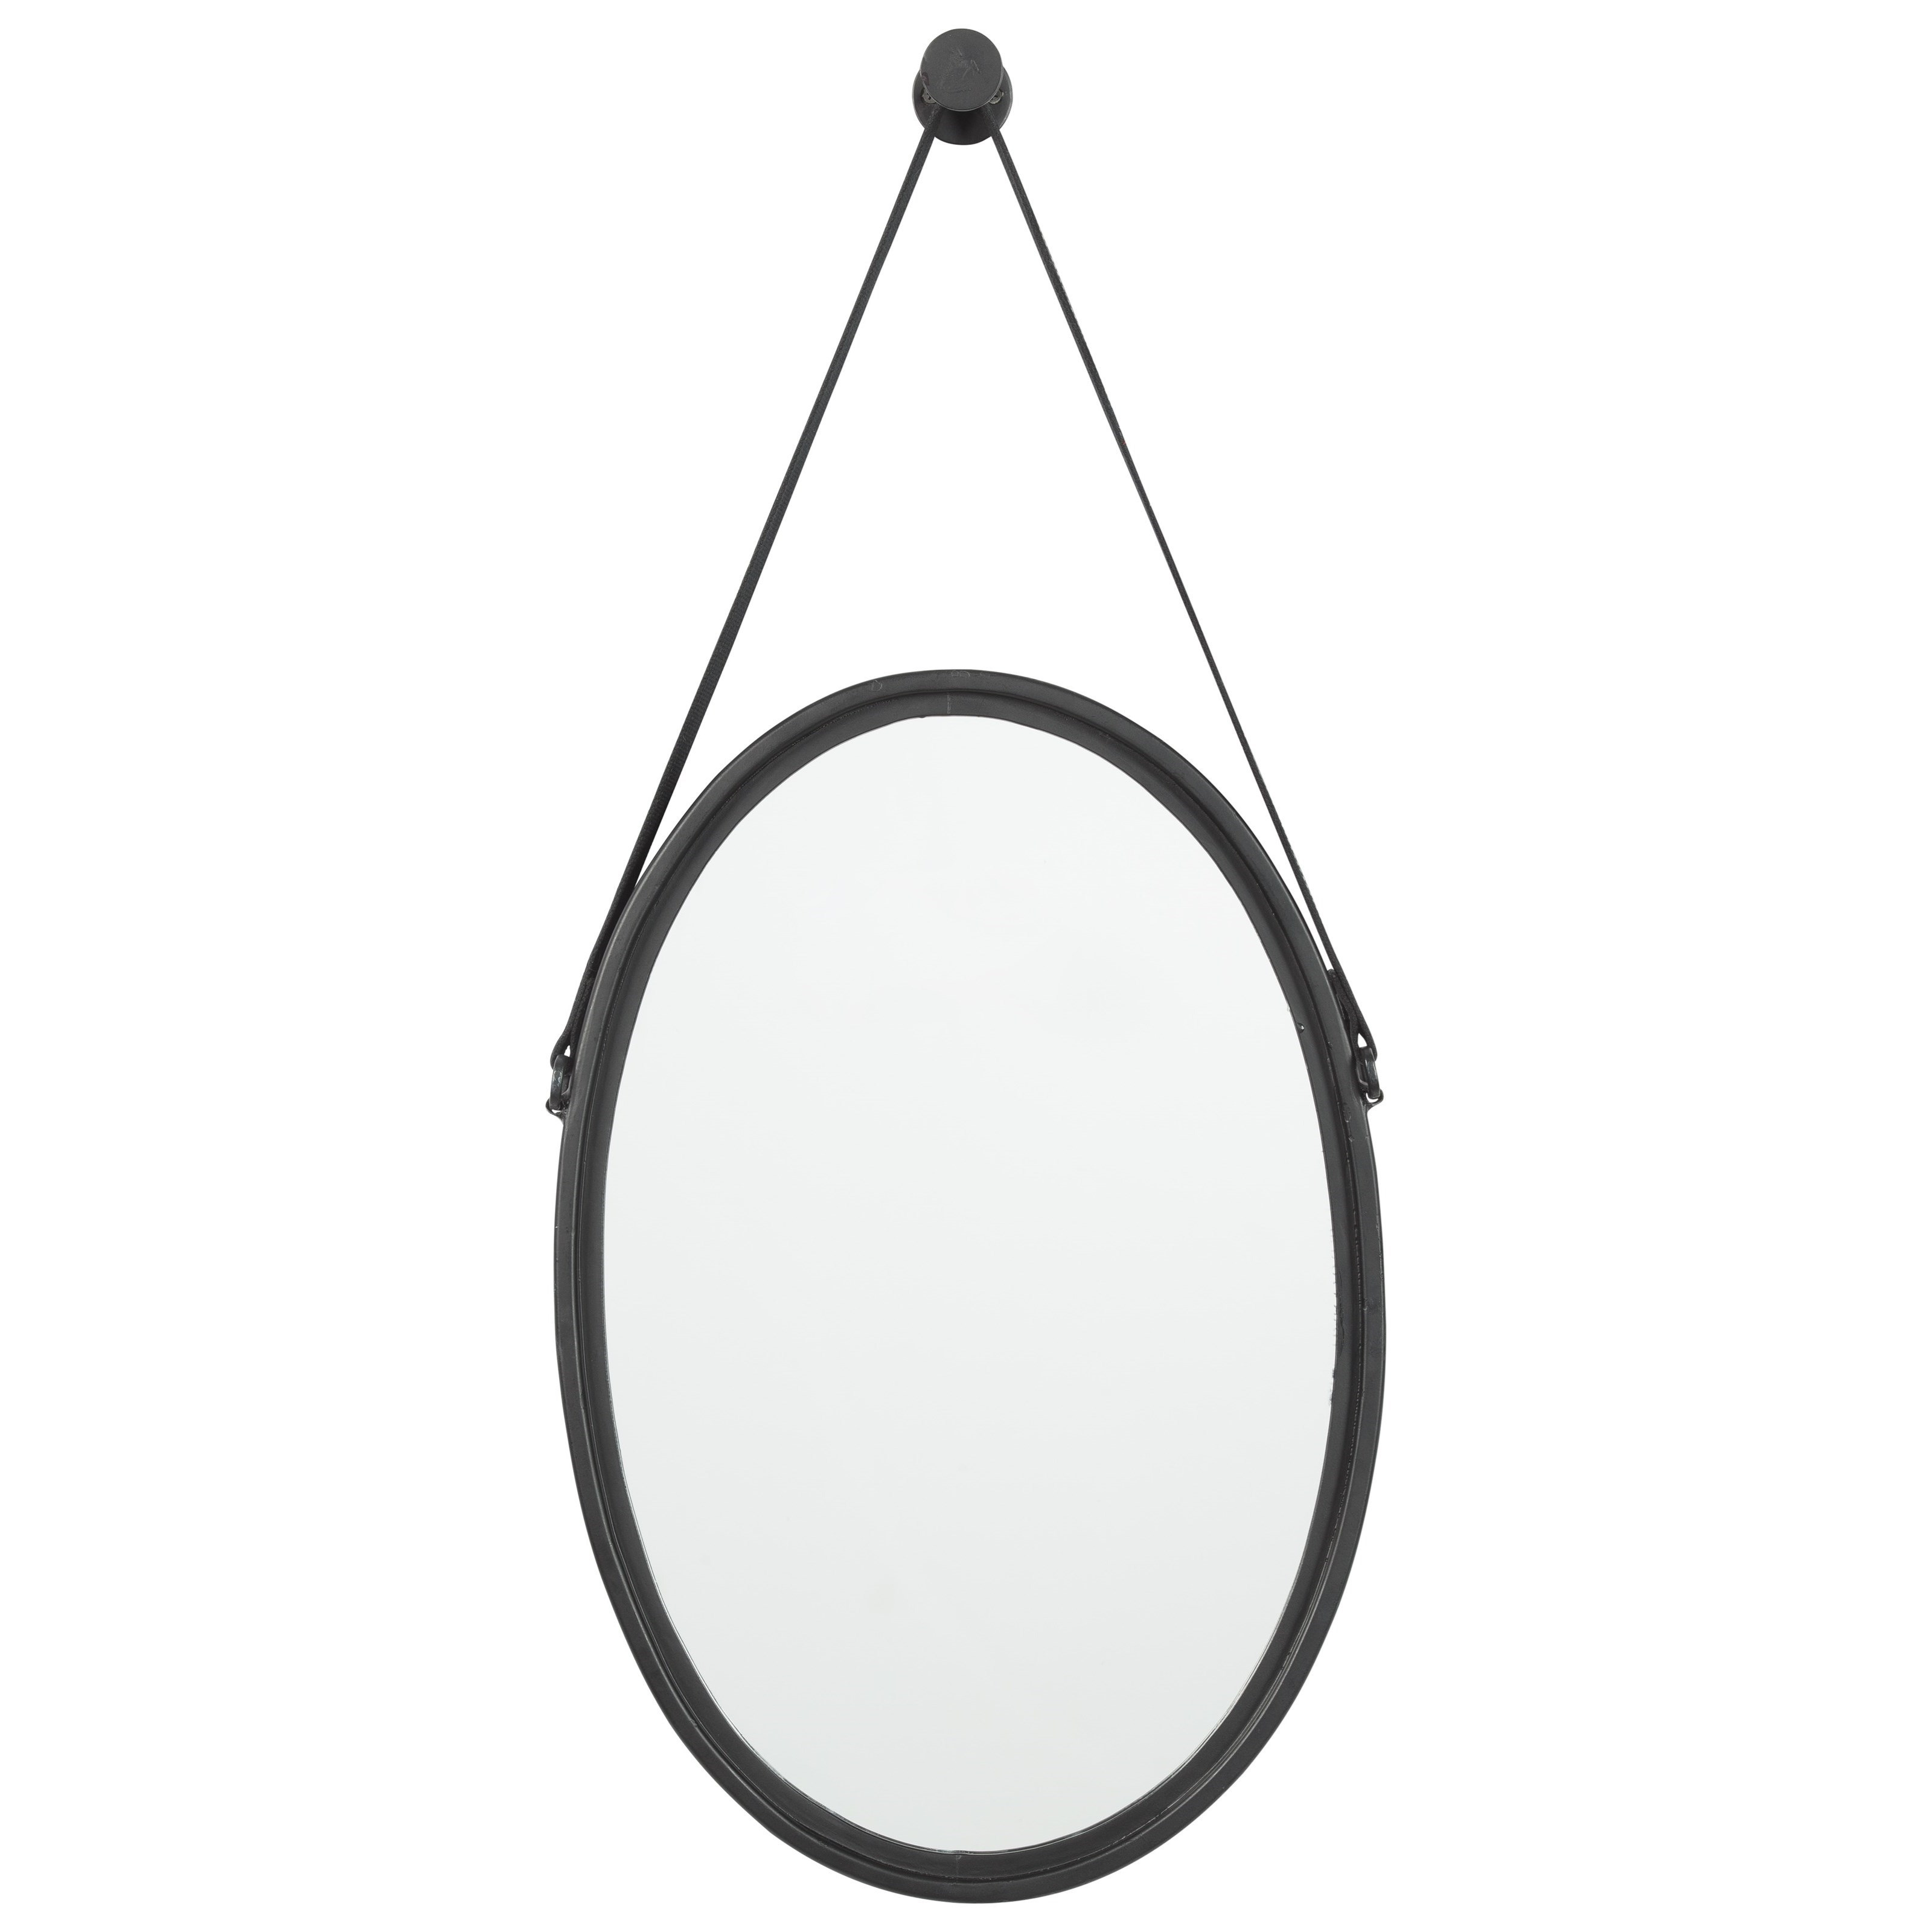 Signature Design by Ashley Accent Mirrors Dusan Black Accent Mirror - Item Number: A8010095